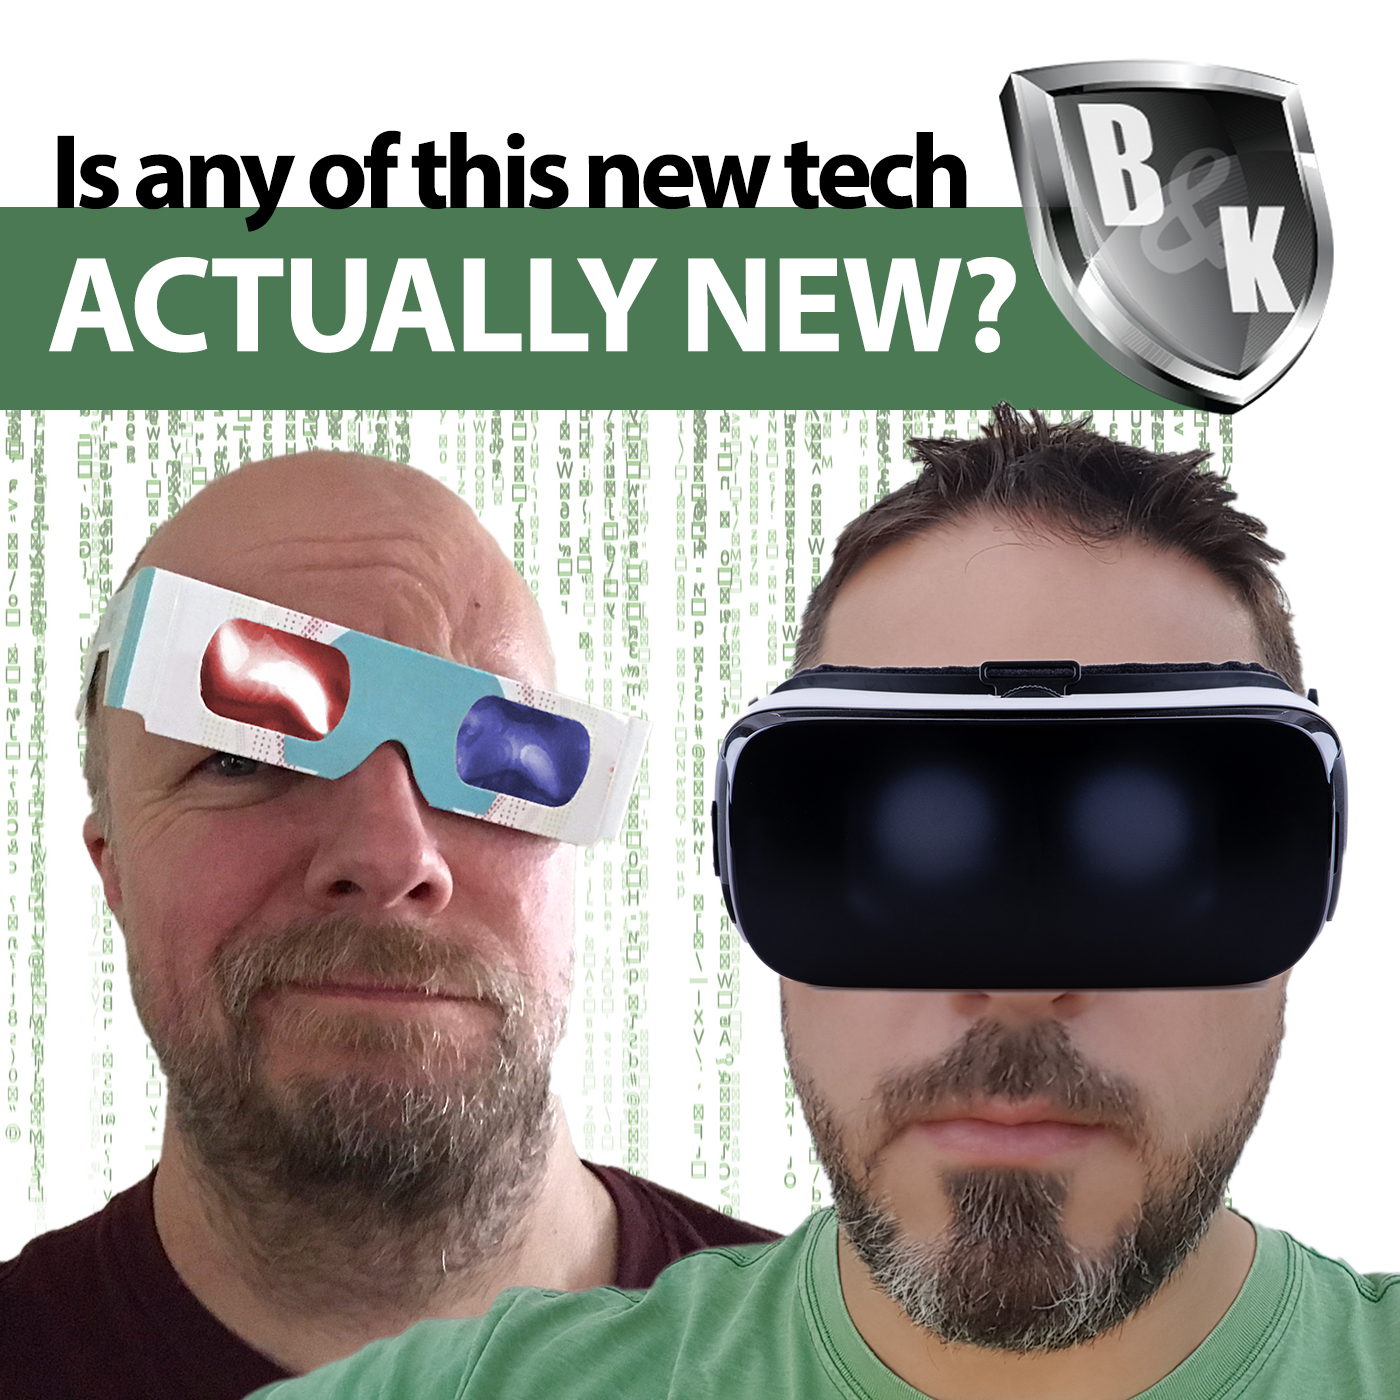 Ep. 010 - Is any of this new technology actually new? Well, Bob & Kevin definitely have thoughts!